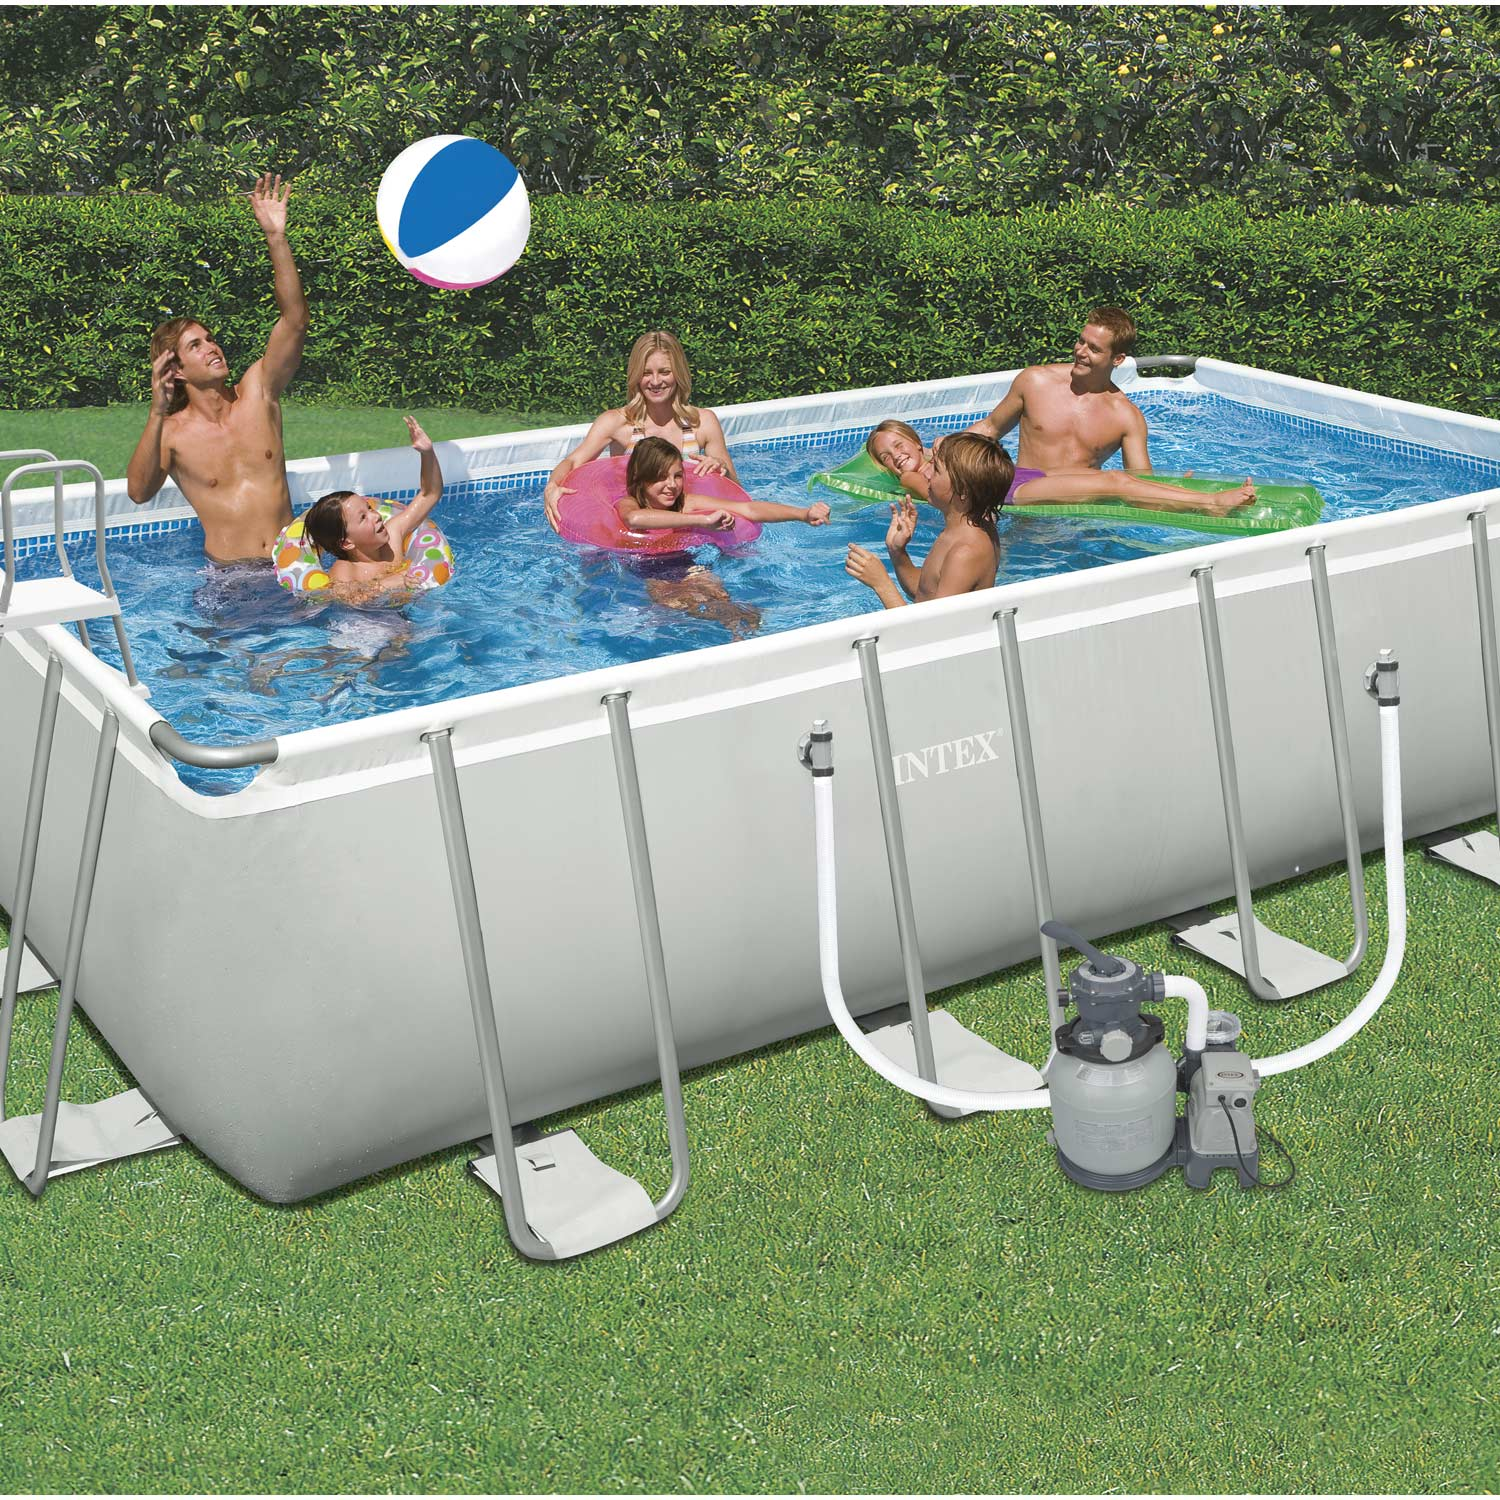 Piscine hors sol autoportante tubulaire intex l x l for Pompe pour piscine hors sol